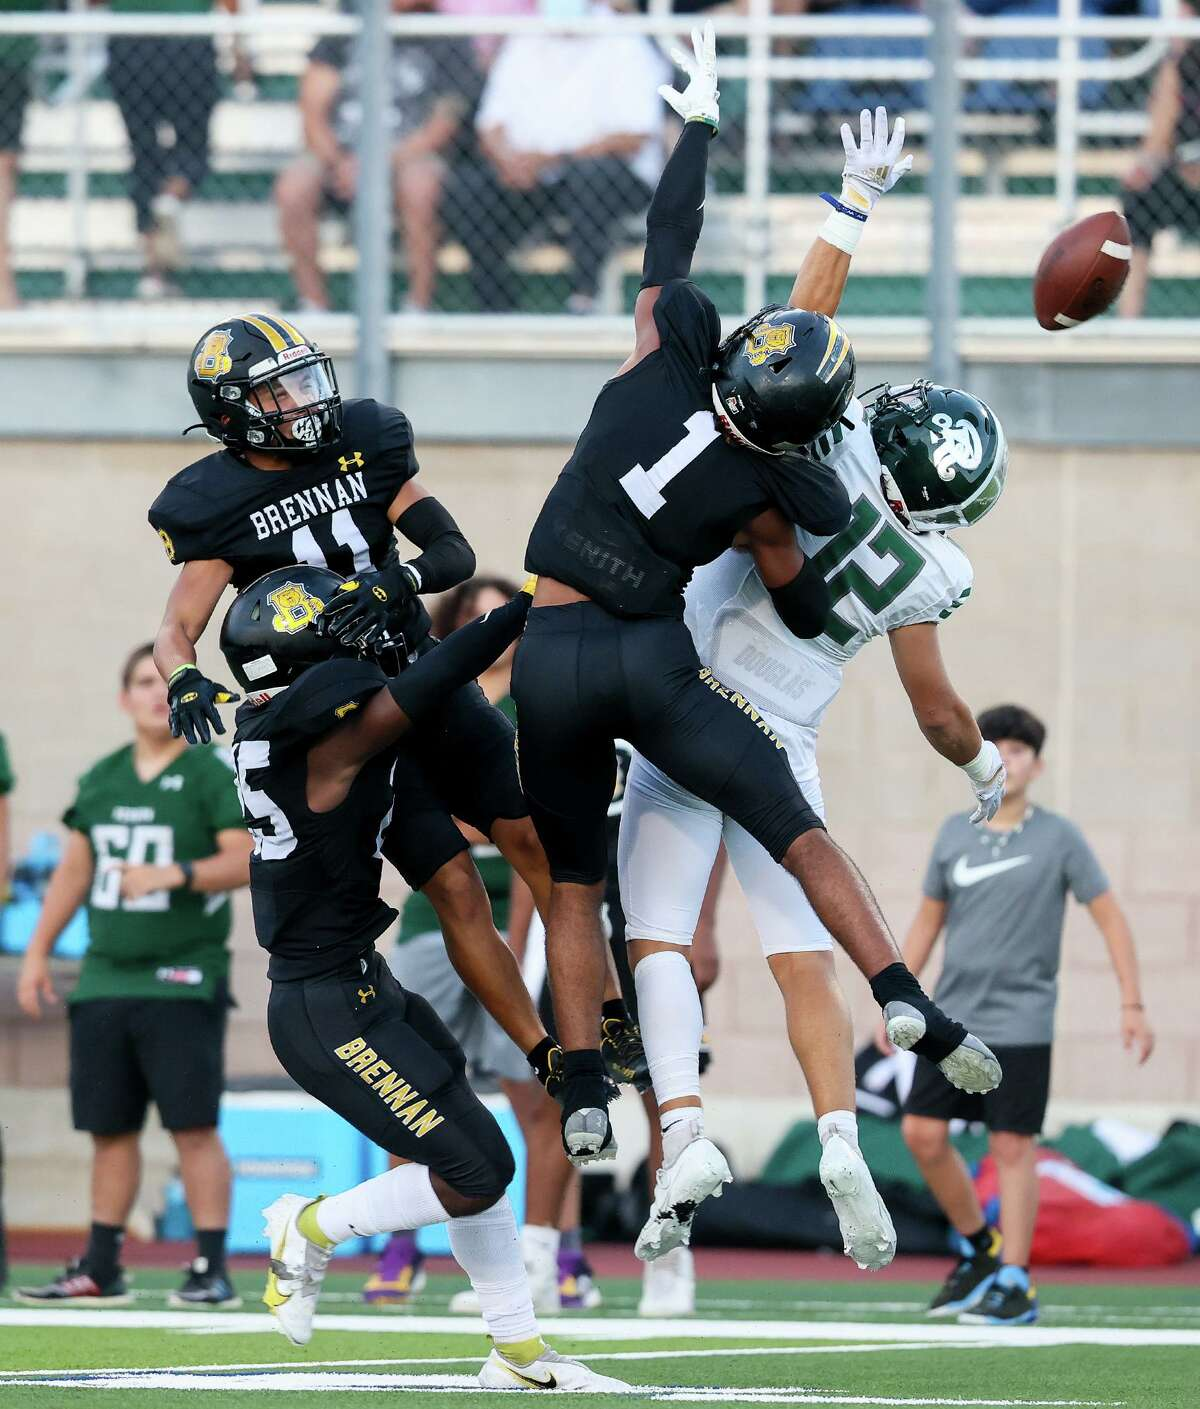 Brennan's Malik Tolbert, from left, Gavin Ramos and Tyler Turner defend a pass intended for Reagan's Lance Lorenz during the first half of their high school football game at Farris Stadium on Friday, Aug. 27, 2021.